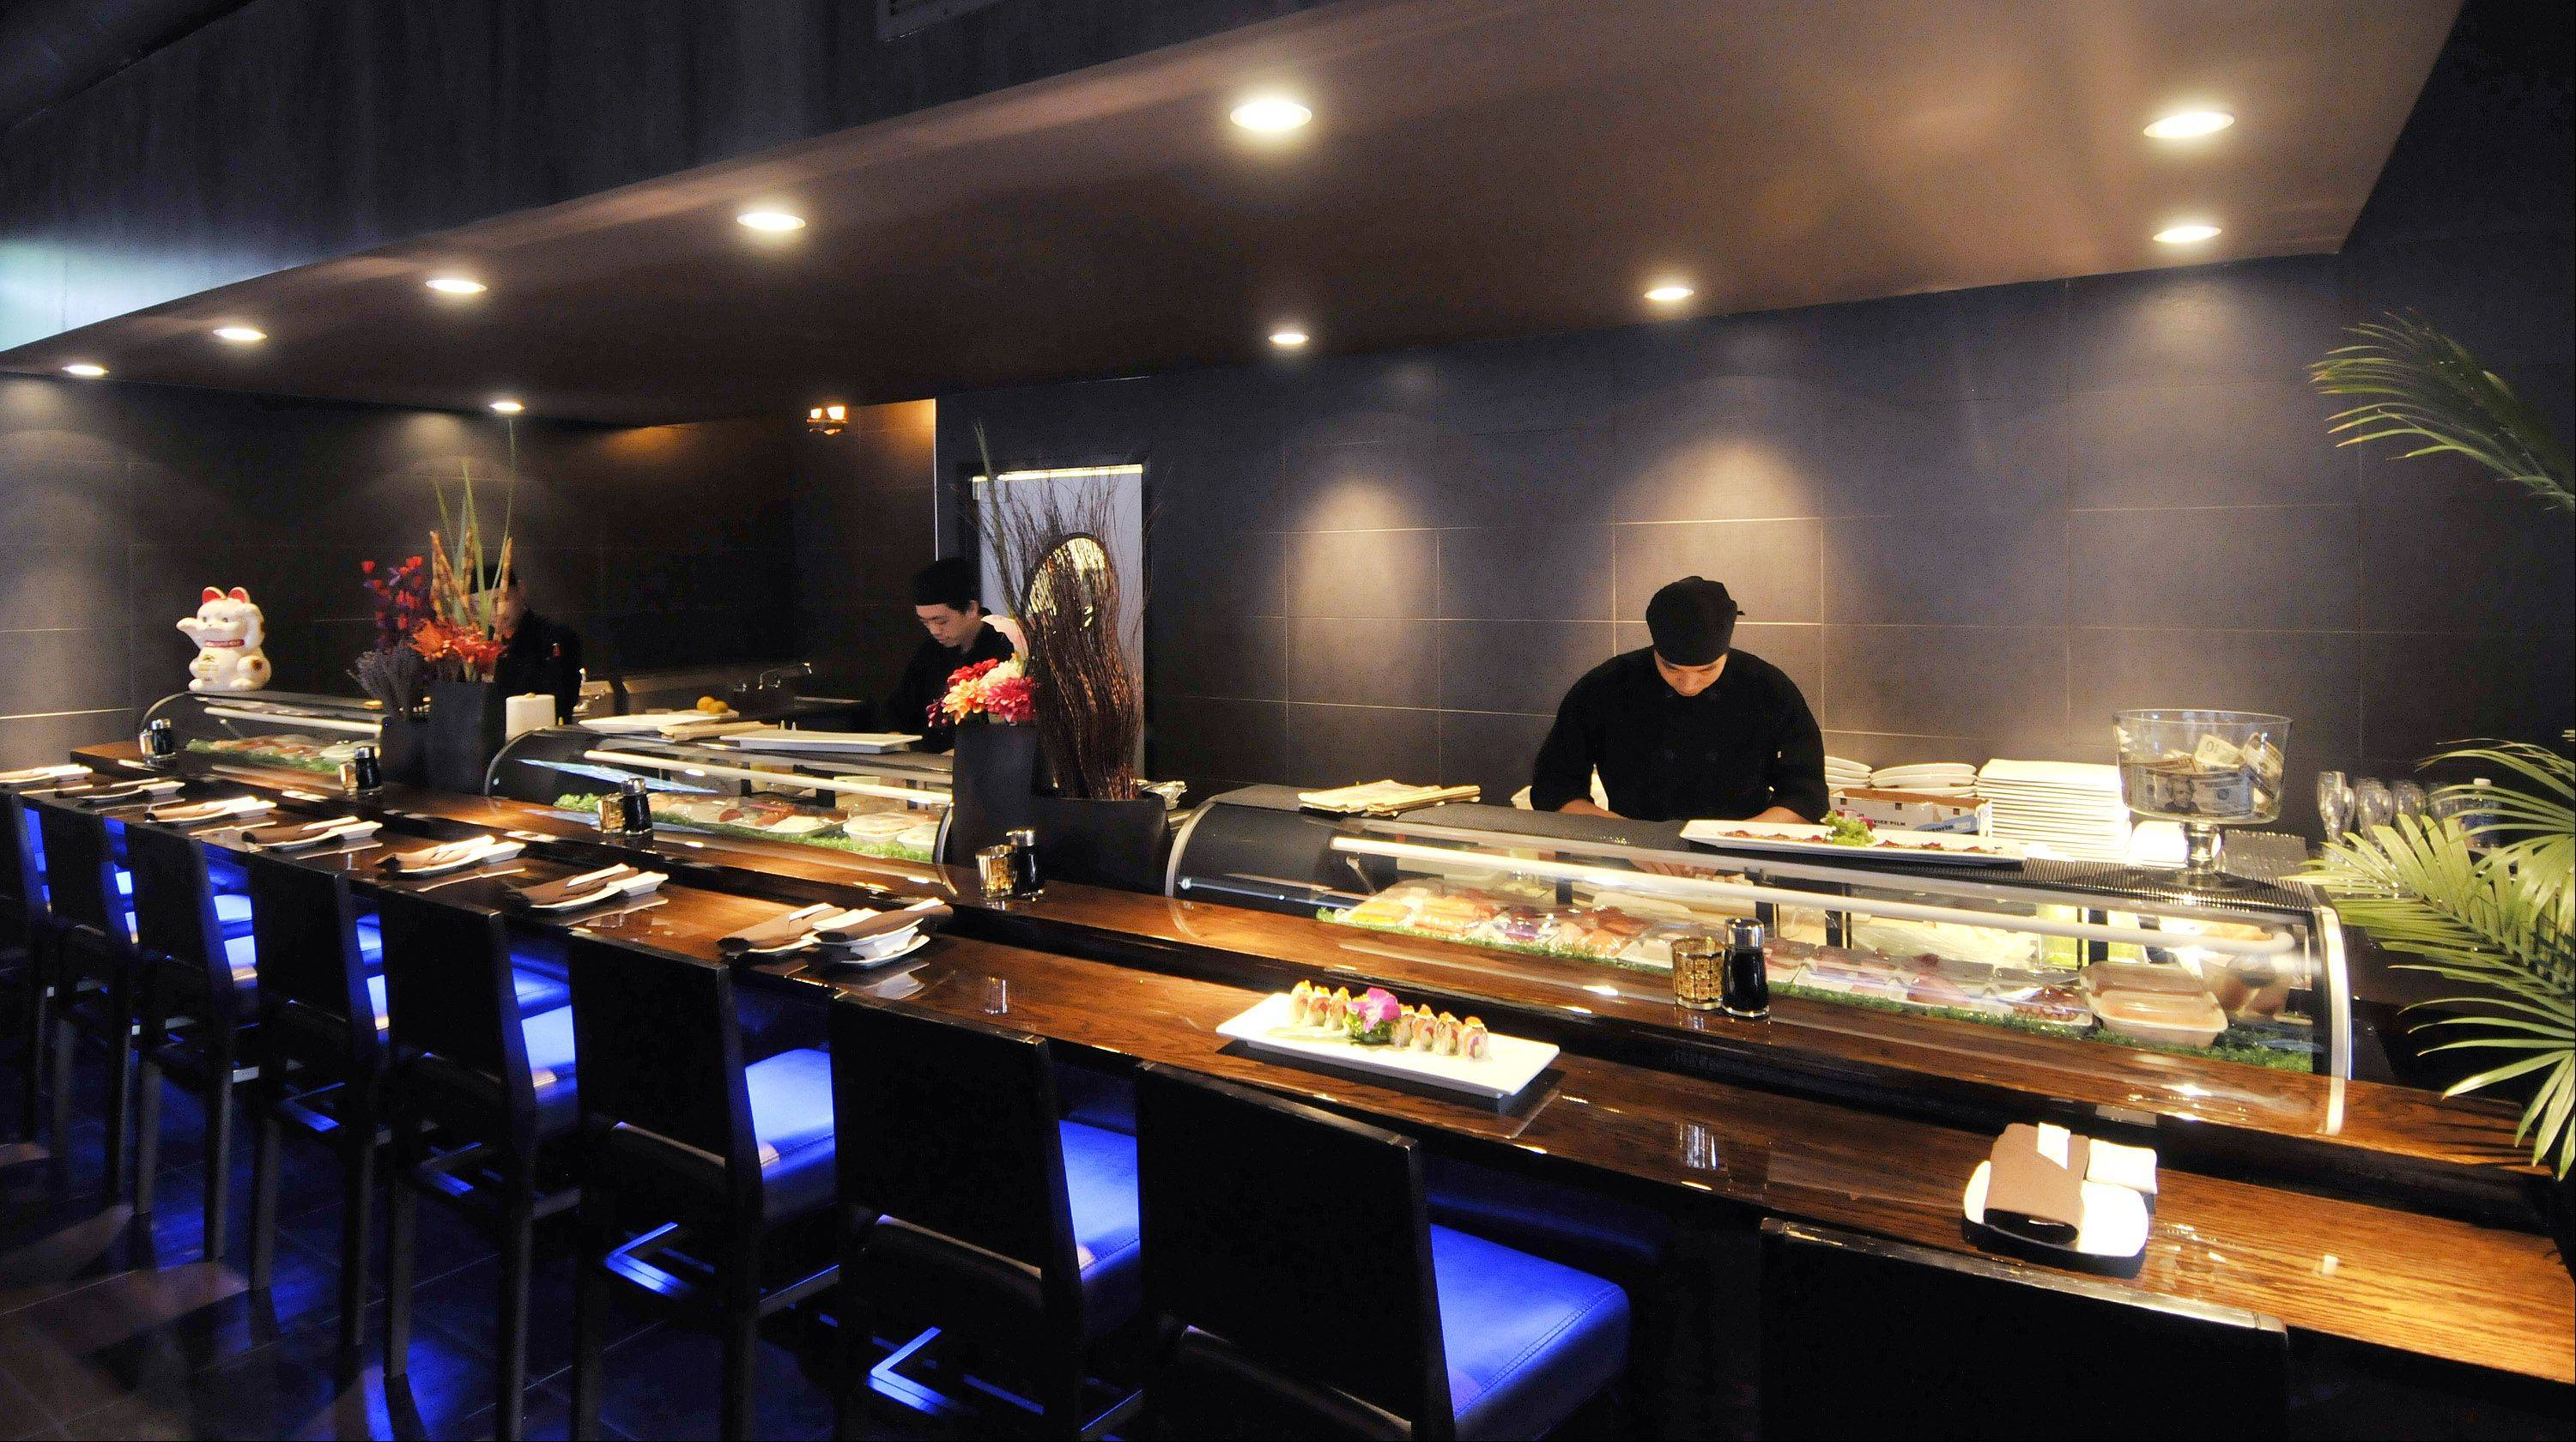 The sushi bar is a centerpiece at Dao in Oakbrook Terrace.